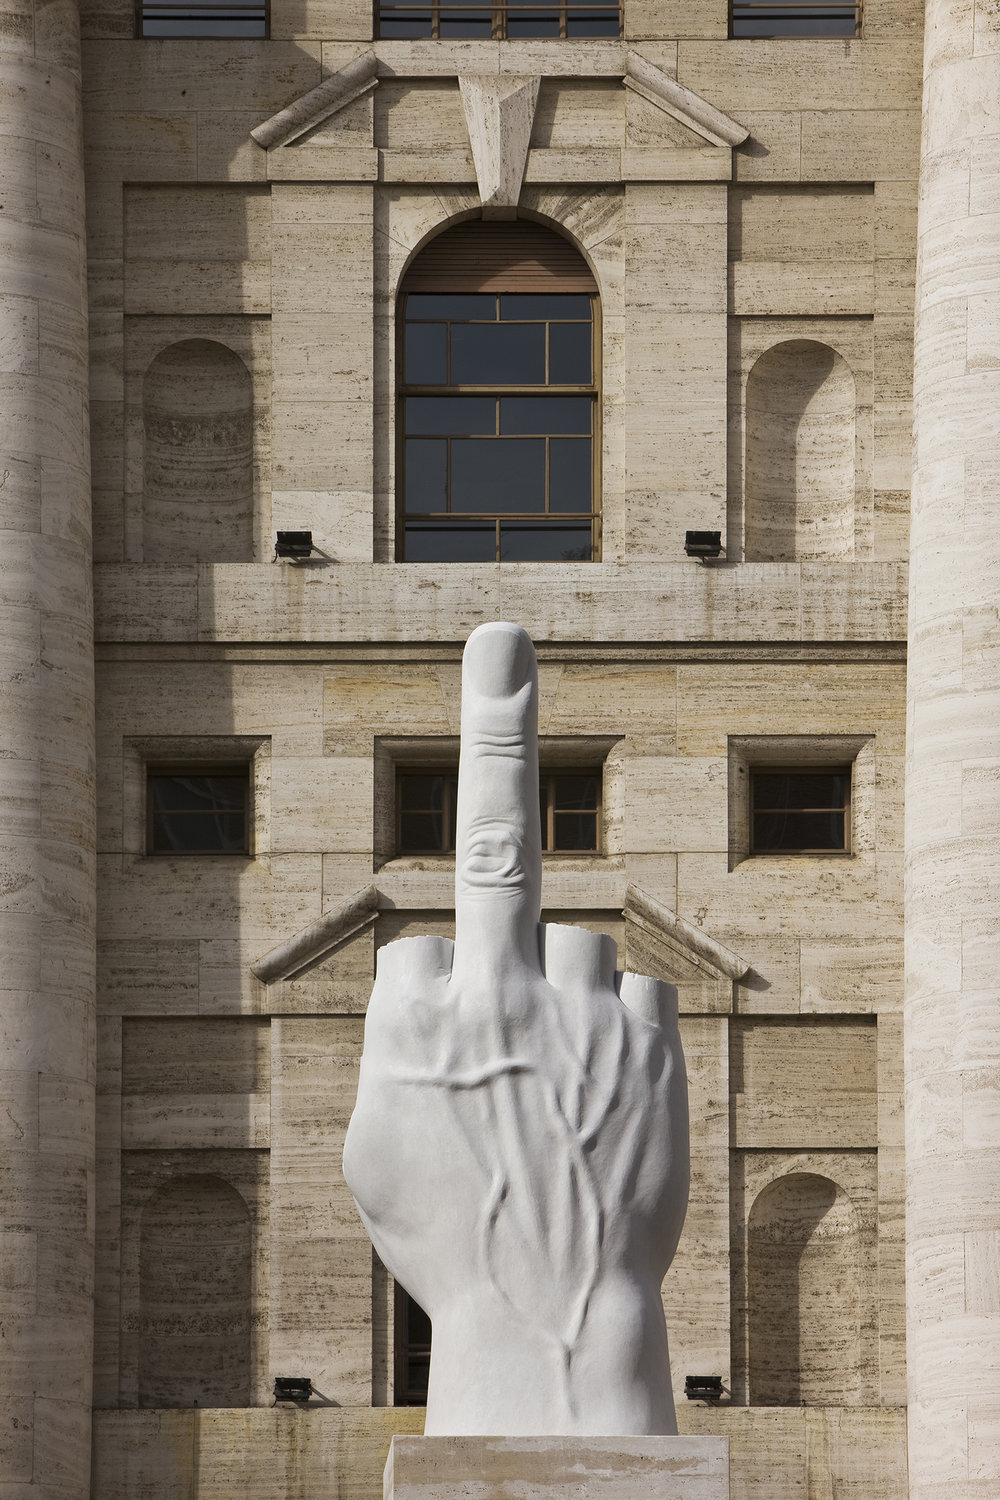 """L.O.V.E."" (2010) by Maurizio Cattelan will be in the artist's solo show at Monnaie de Paris. (Photo: Zeno Zotti/Courtesy Maurizio Cattelan's Archive)"